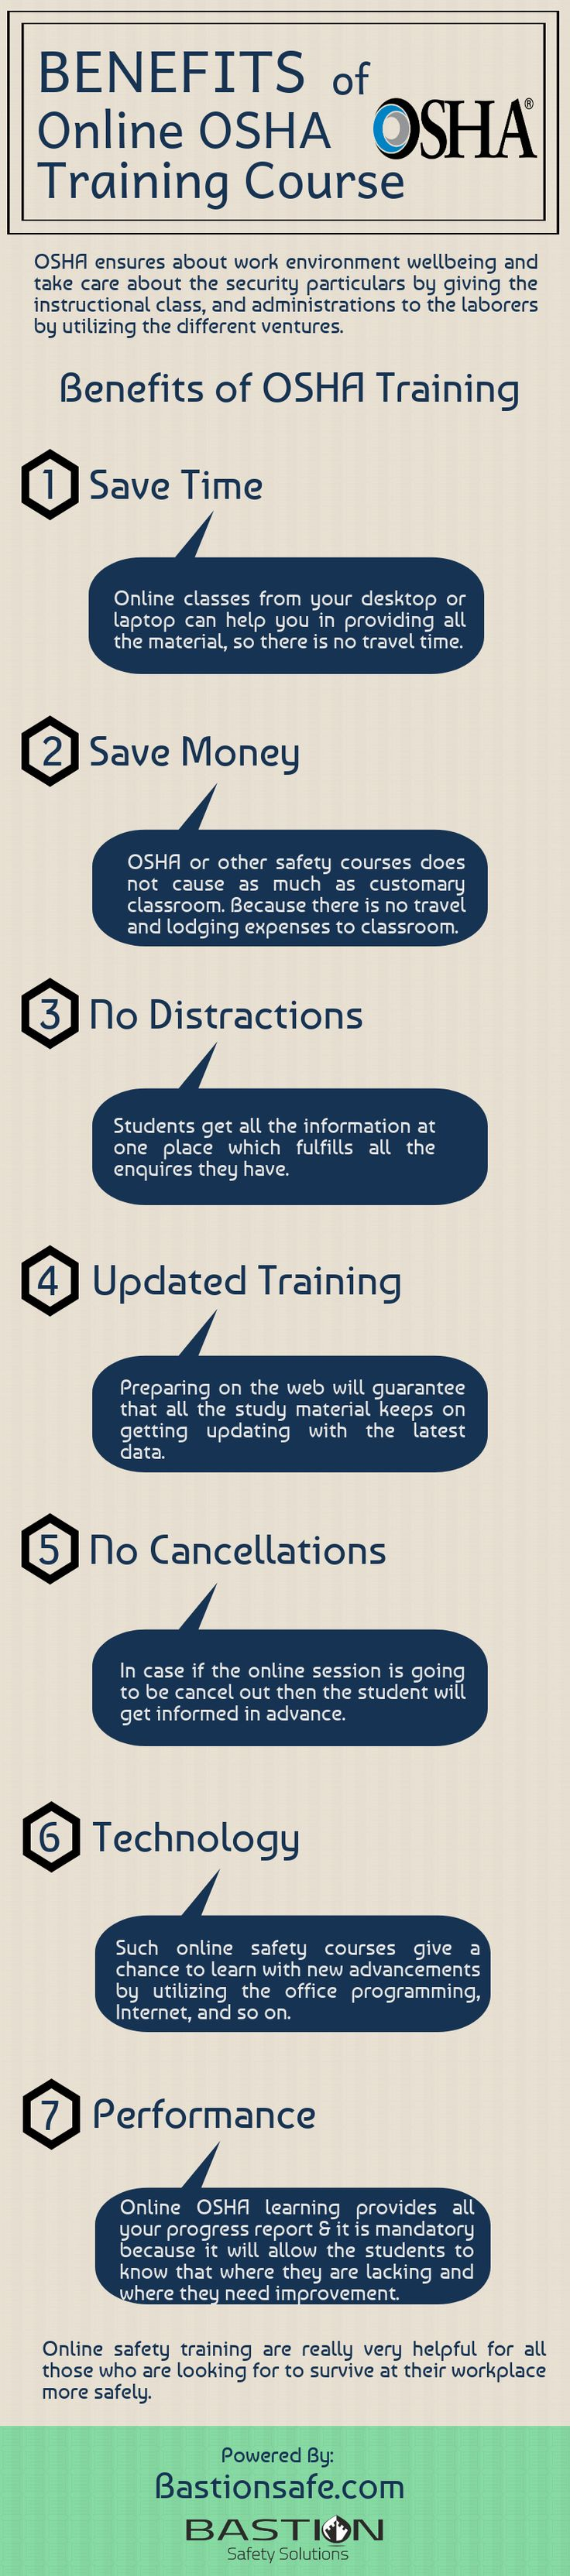 Best Online Safety Solutions Images On   Safety